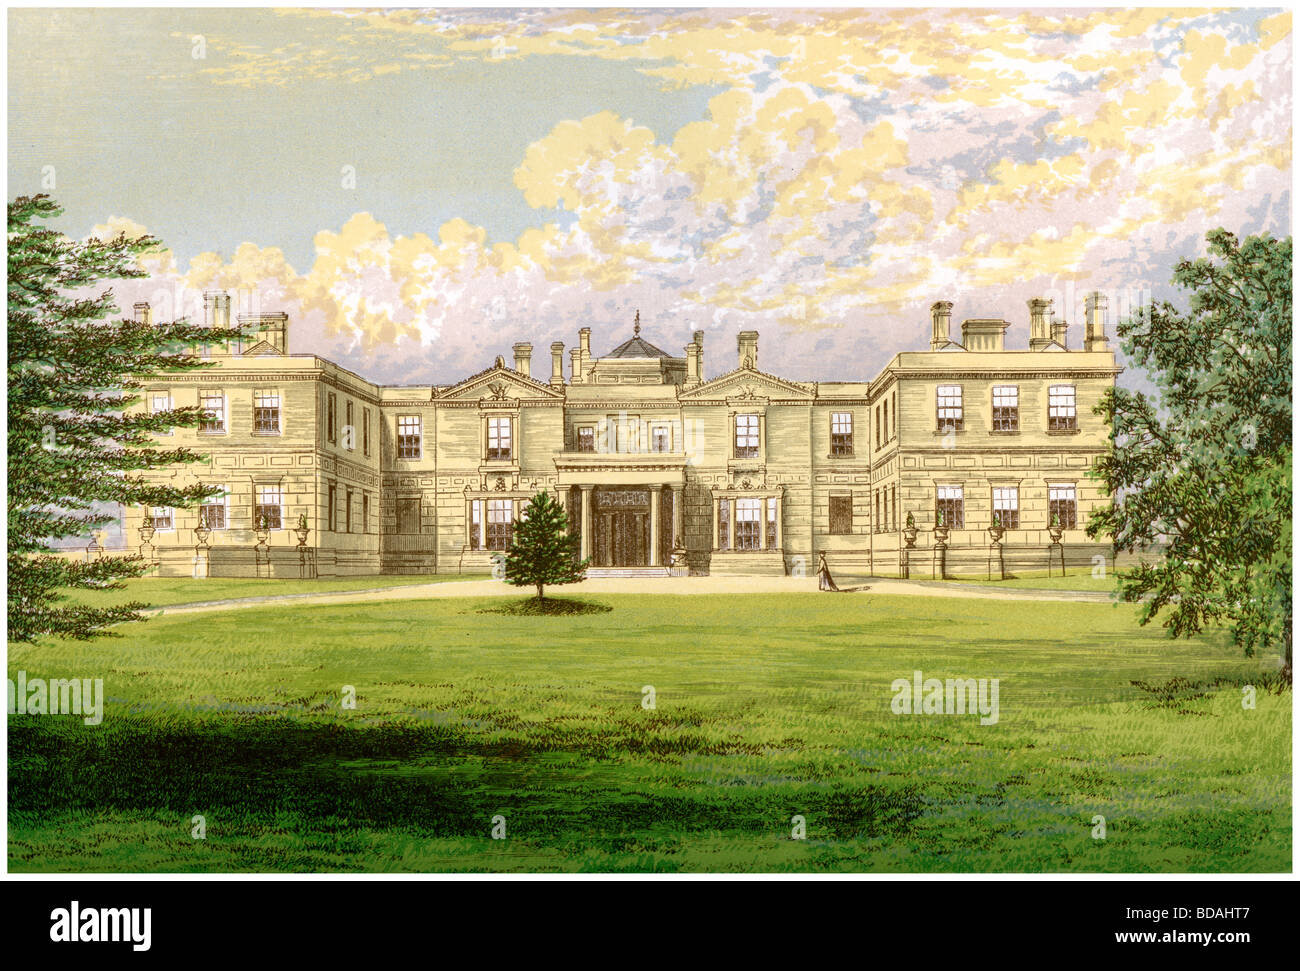 Swithland Hall, Leicestershire, home of the Earl of Lanesborough, c1880. Artist: Unknown - Stock Image